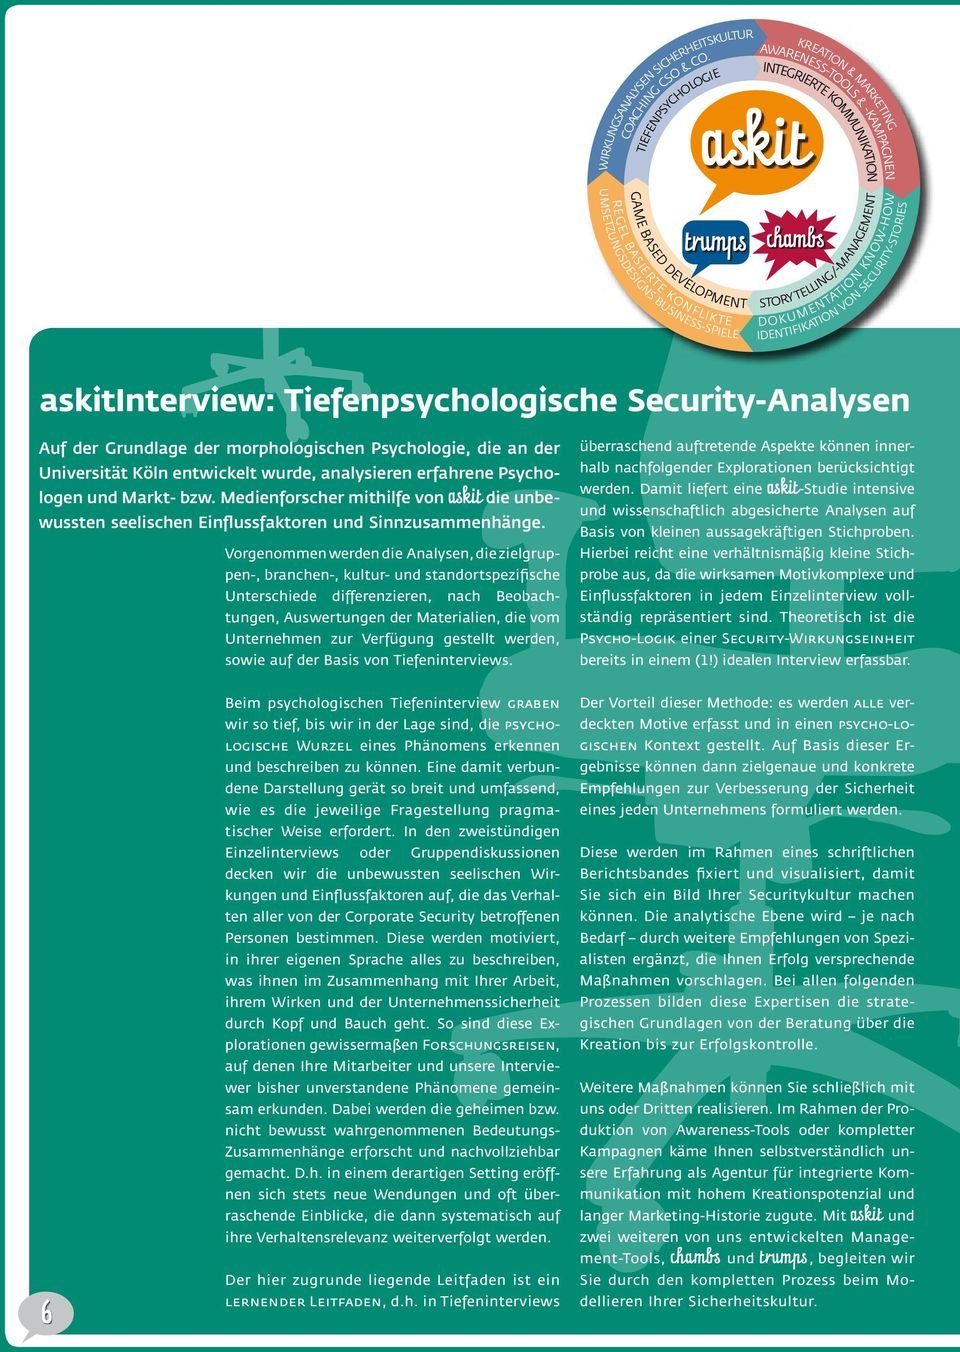 BASIERTE KONFLIKTE trumps chambs STORY TELLING/-MANAGEMENT DOKUMENTATION KNOW-HOW IDENTIFIKATION VON SECURITY-STORIES askitinterview: Tiefenpsychologische Security-Analysen Auf der Grundlage der